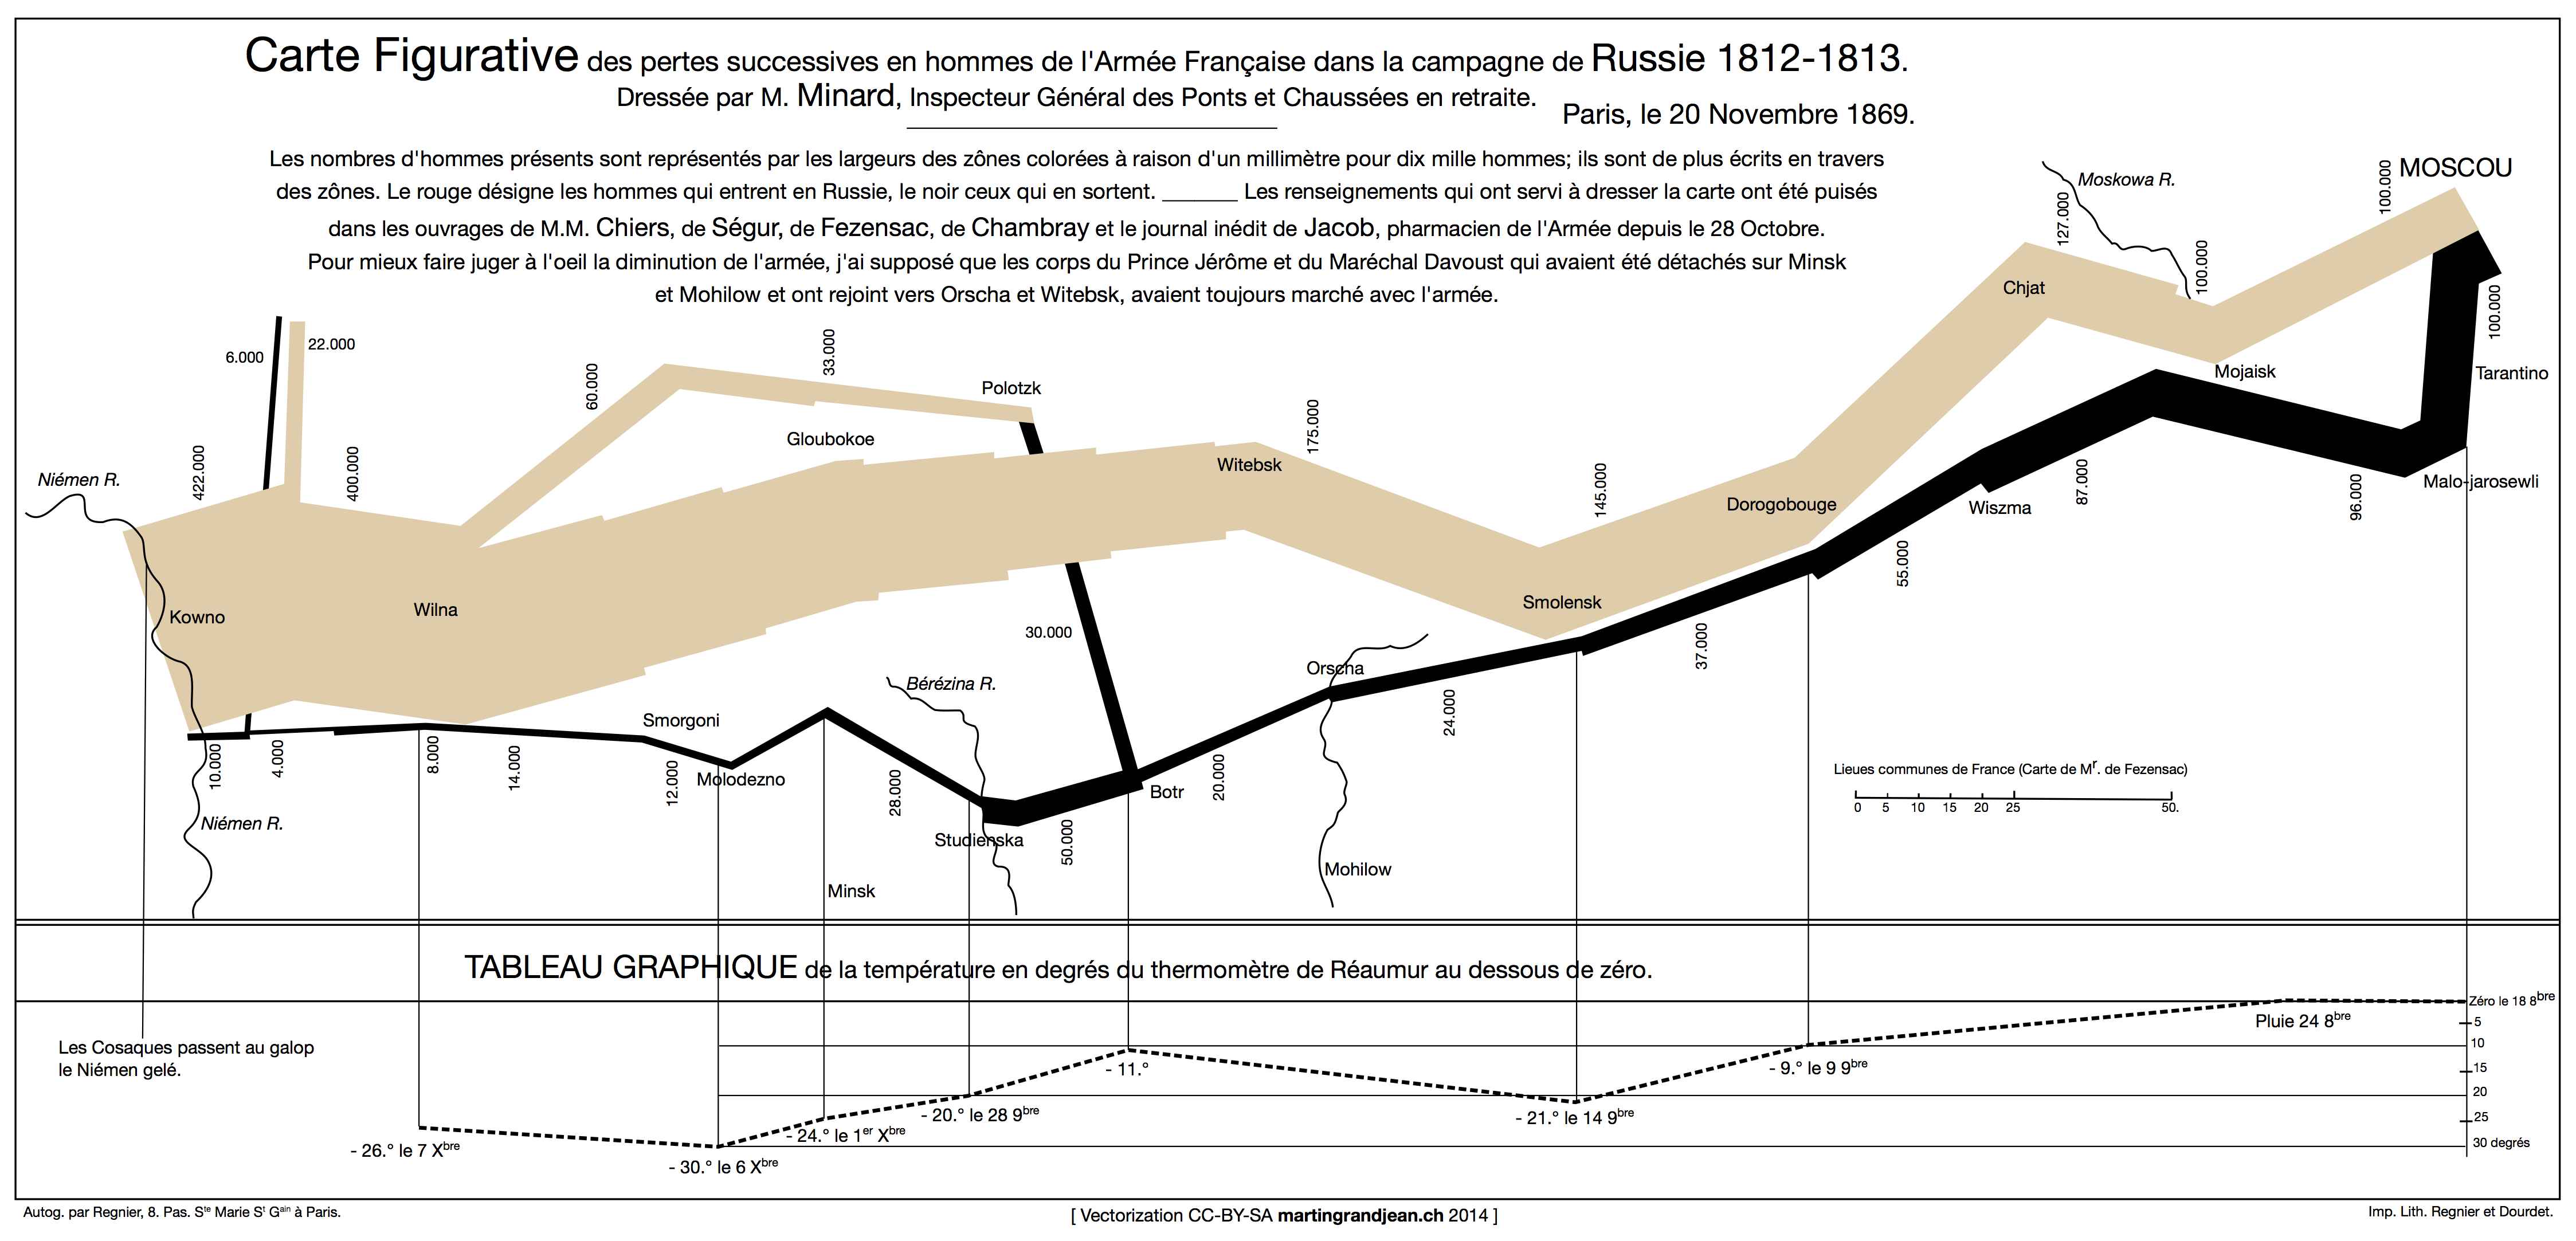 Charles Joseph Minard's vectorized map (1869) displaying the movements and the number of Napoleonic troops during the Russian campaign (1812-1813), as well as the temperature on the return path.